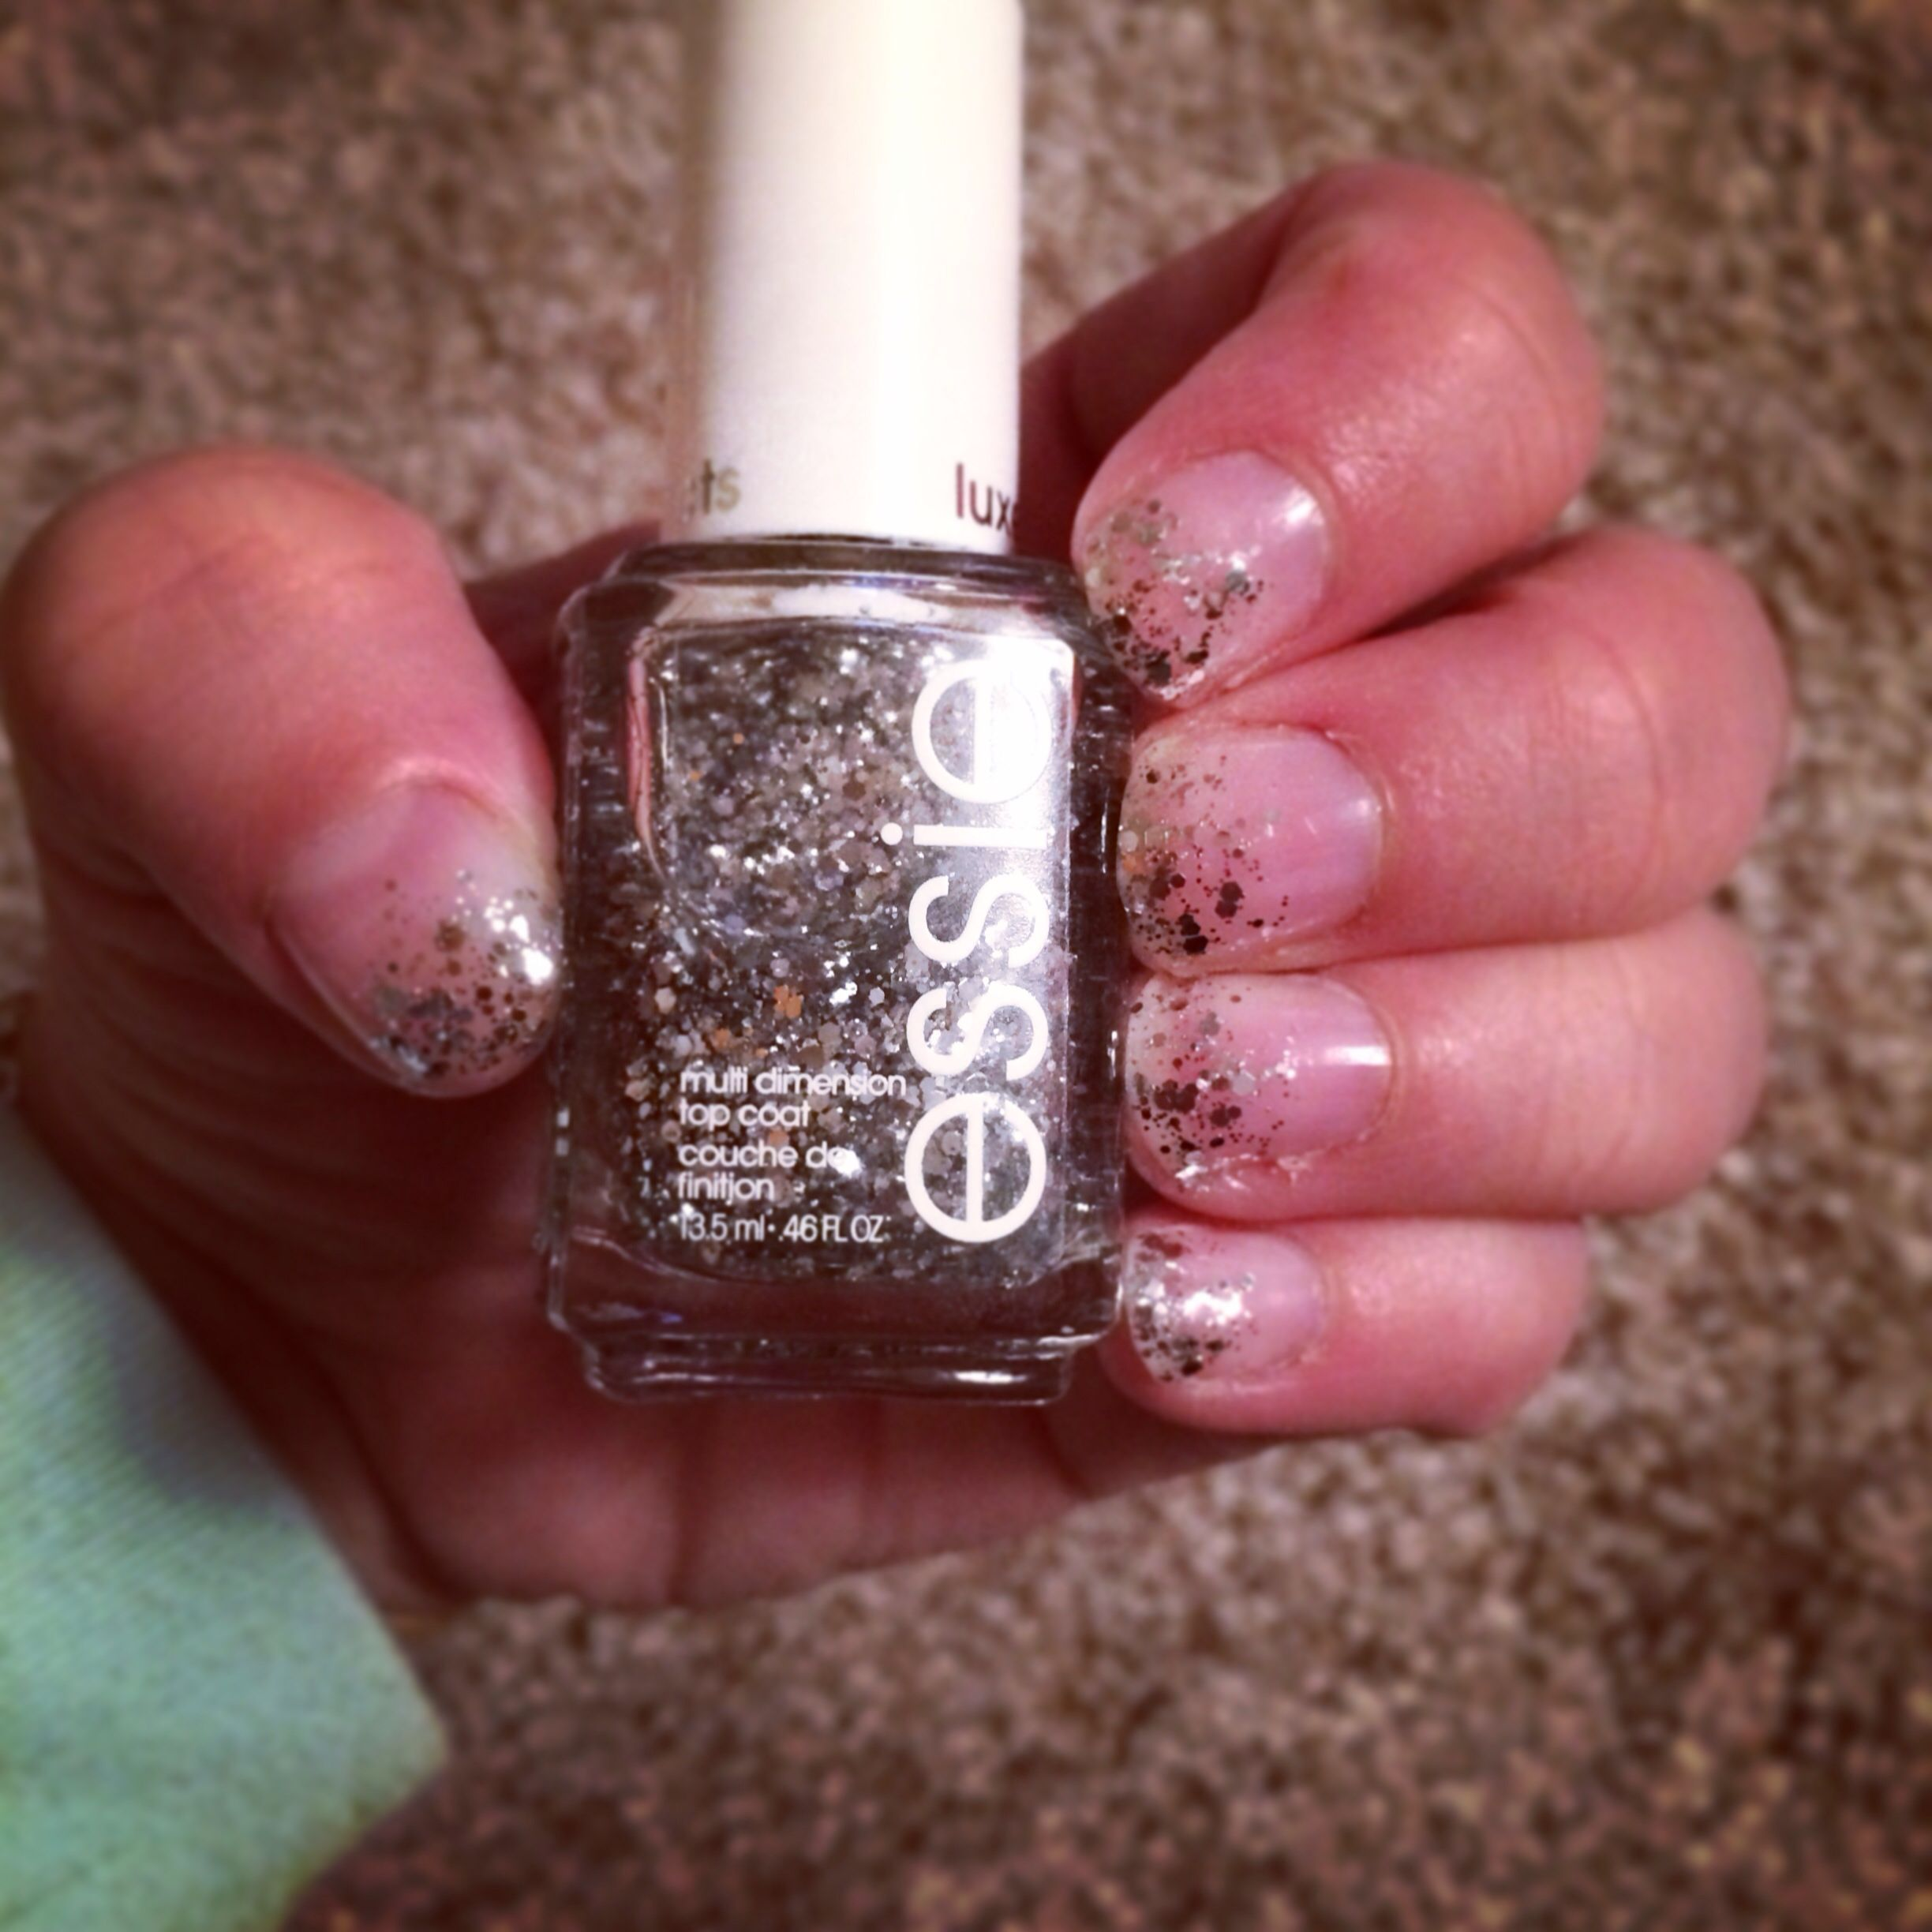 Sparkly French tips. Light pink polish with silver ombré sparkles on the tips.